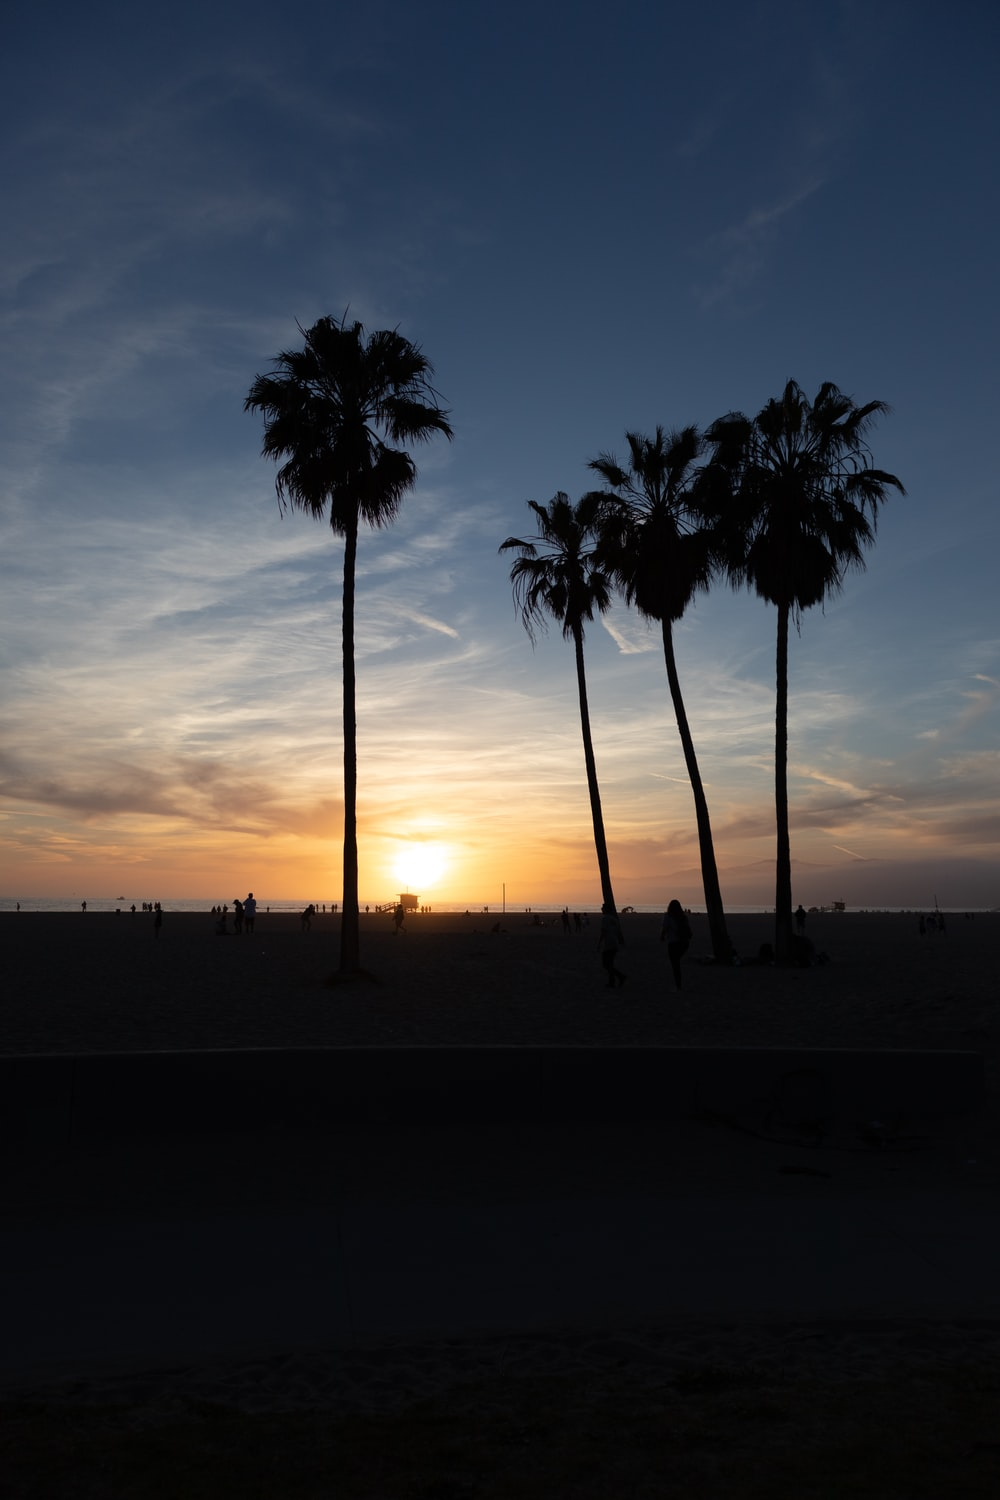 silhouette of coconut trees at sunset